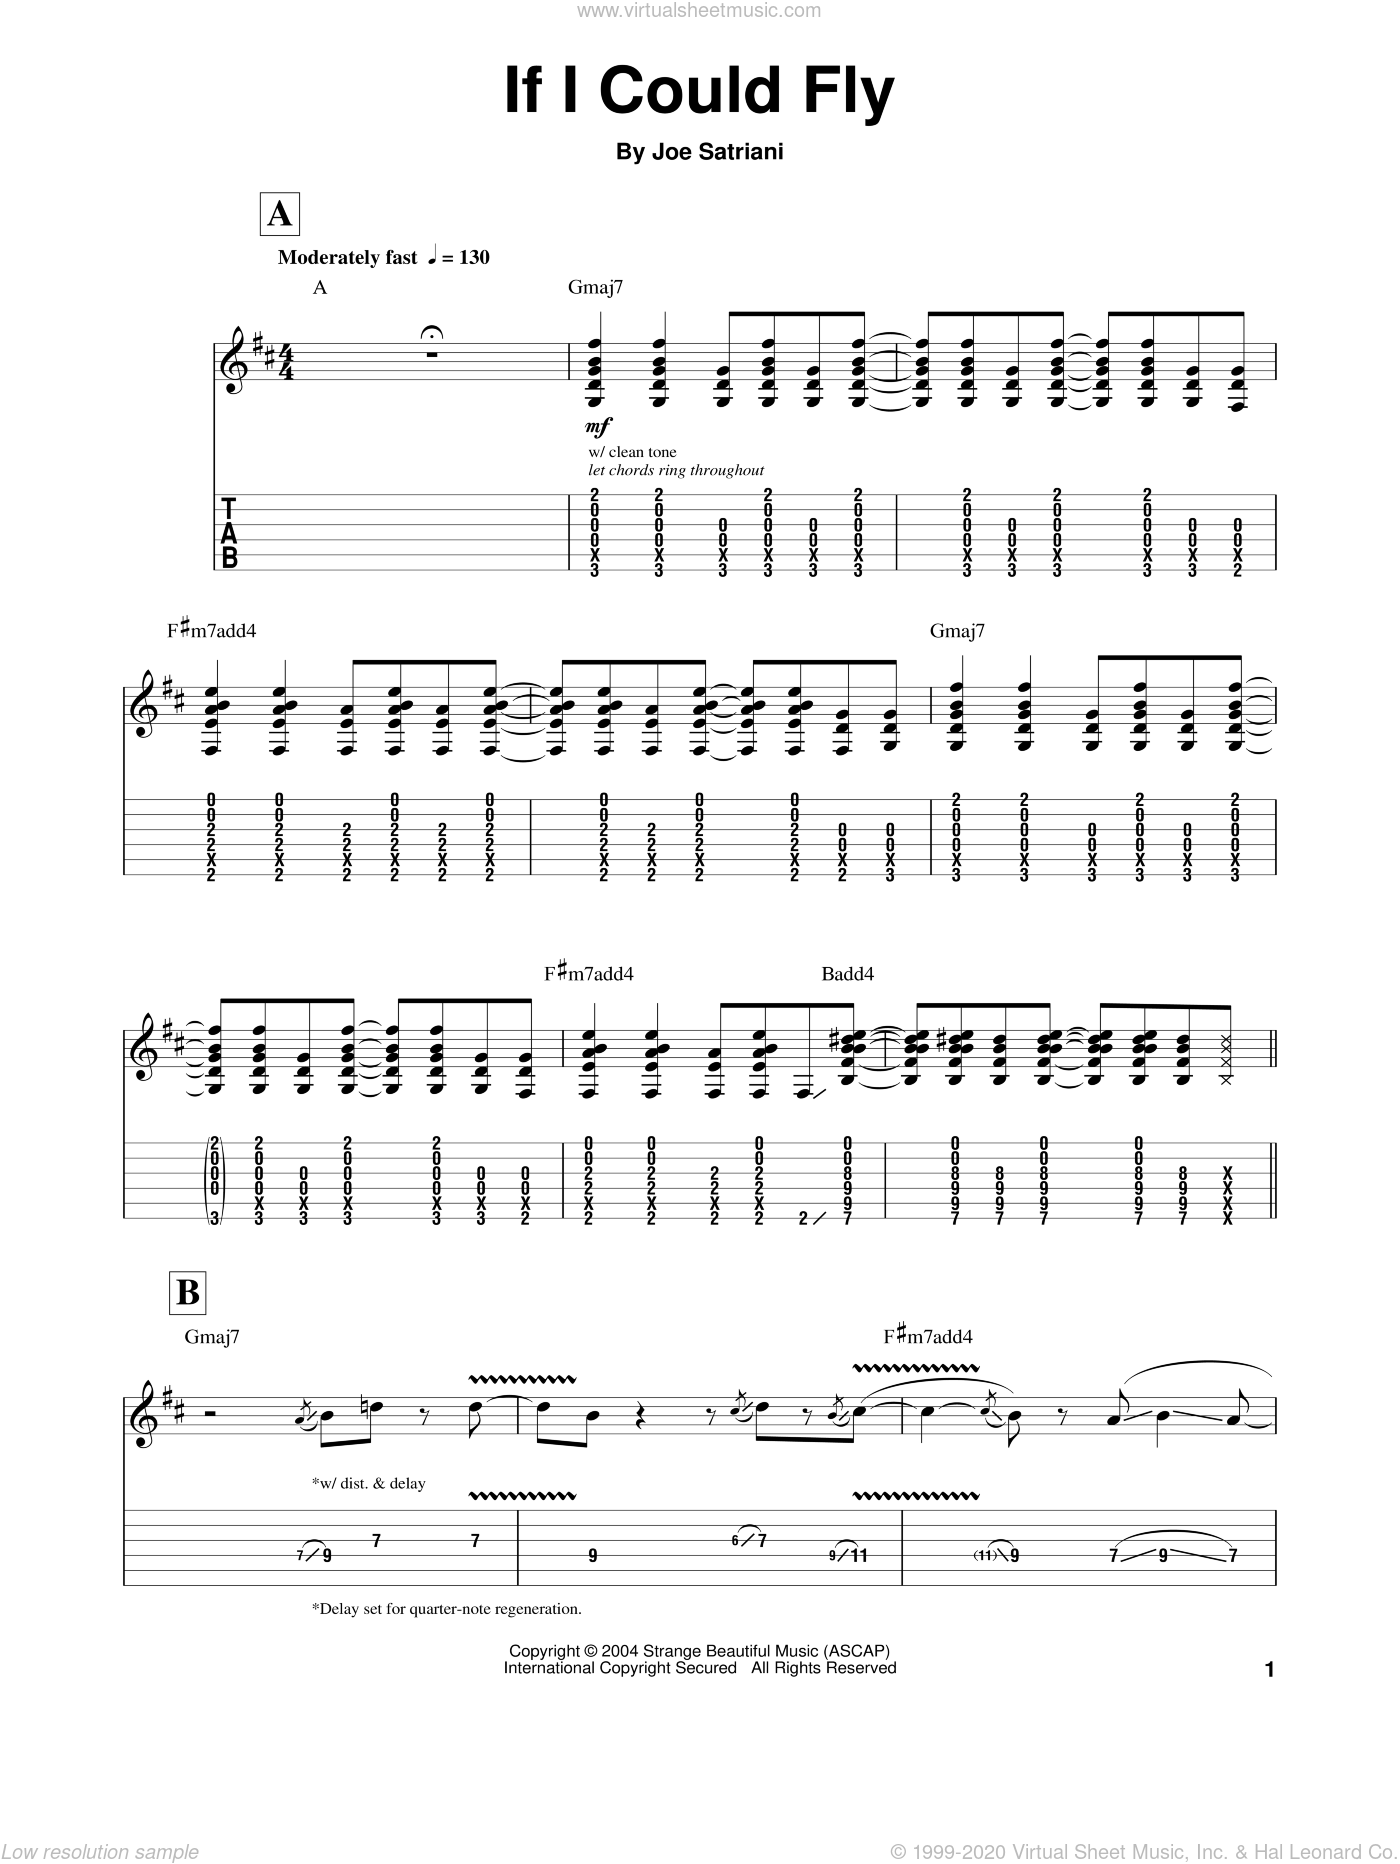 If I Could Fly sheet music for guitar (tablature, play-along) by Joe Satriani, intermediate. Score Image Preview.